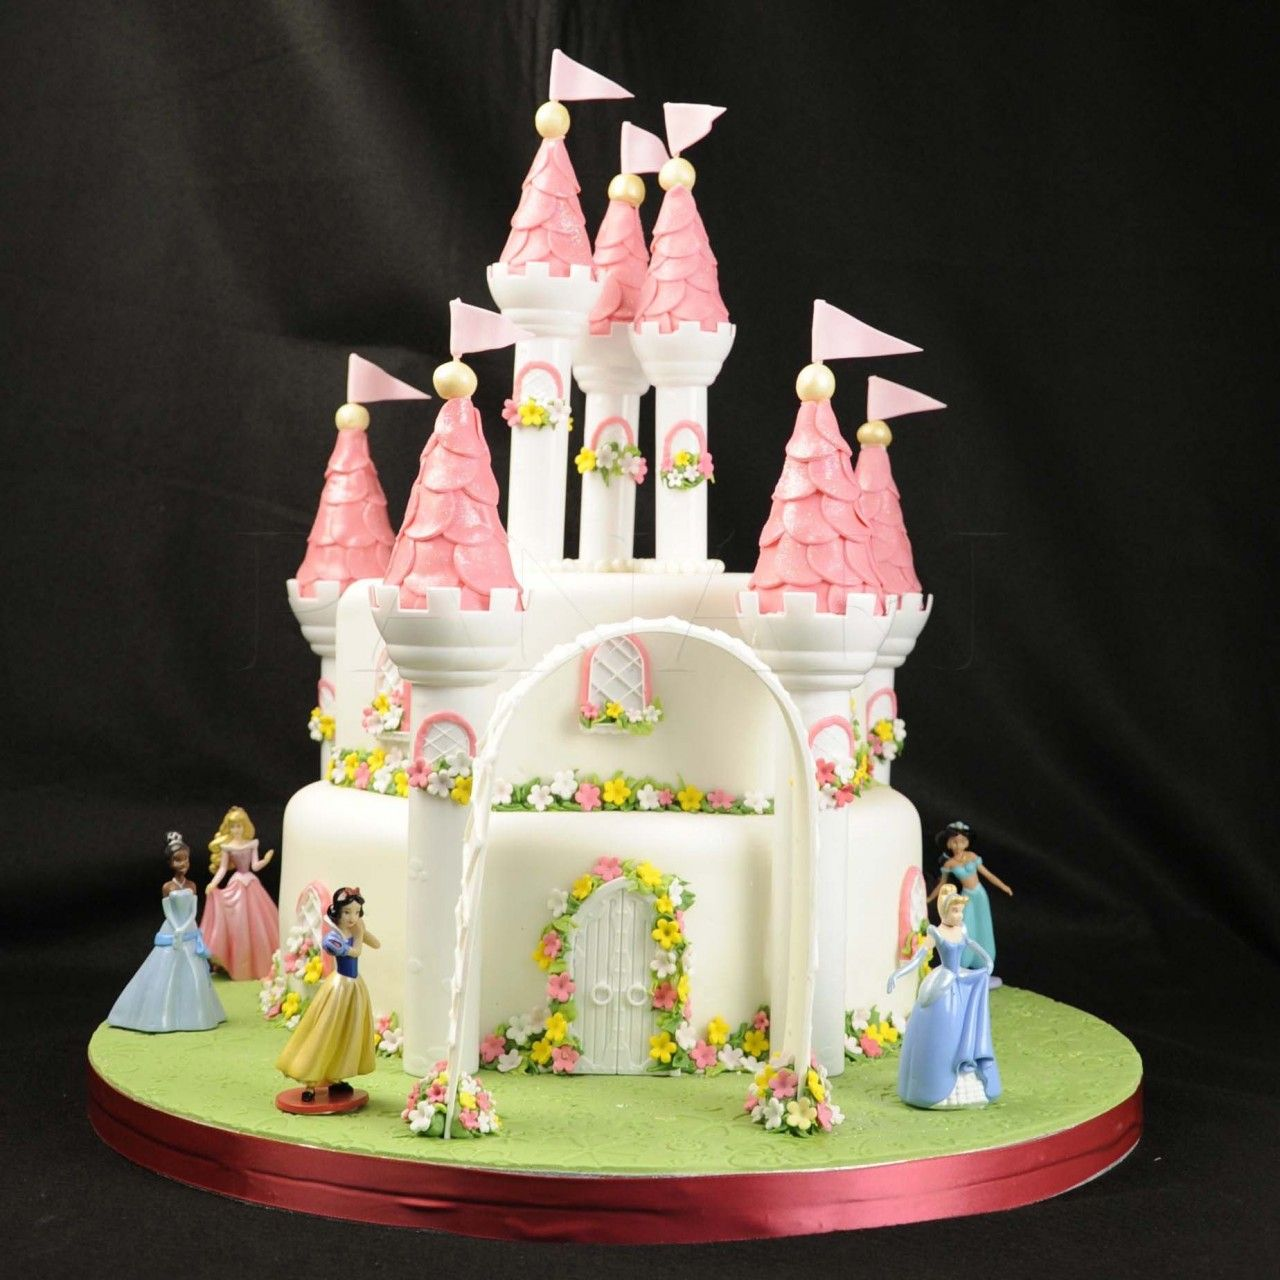 image detail for -home wedding cake toppers castles romantic